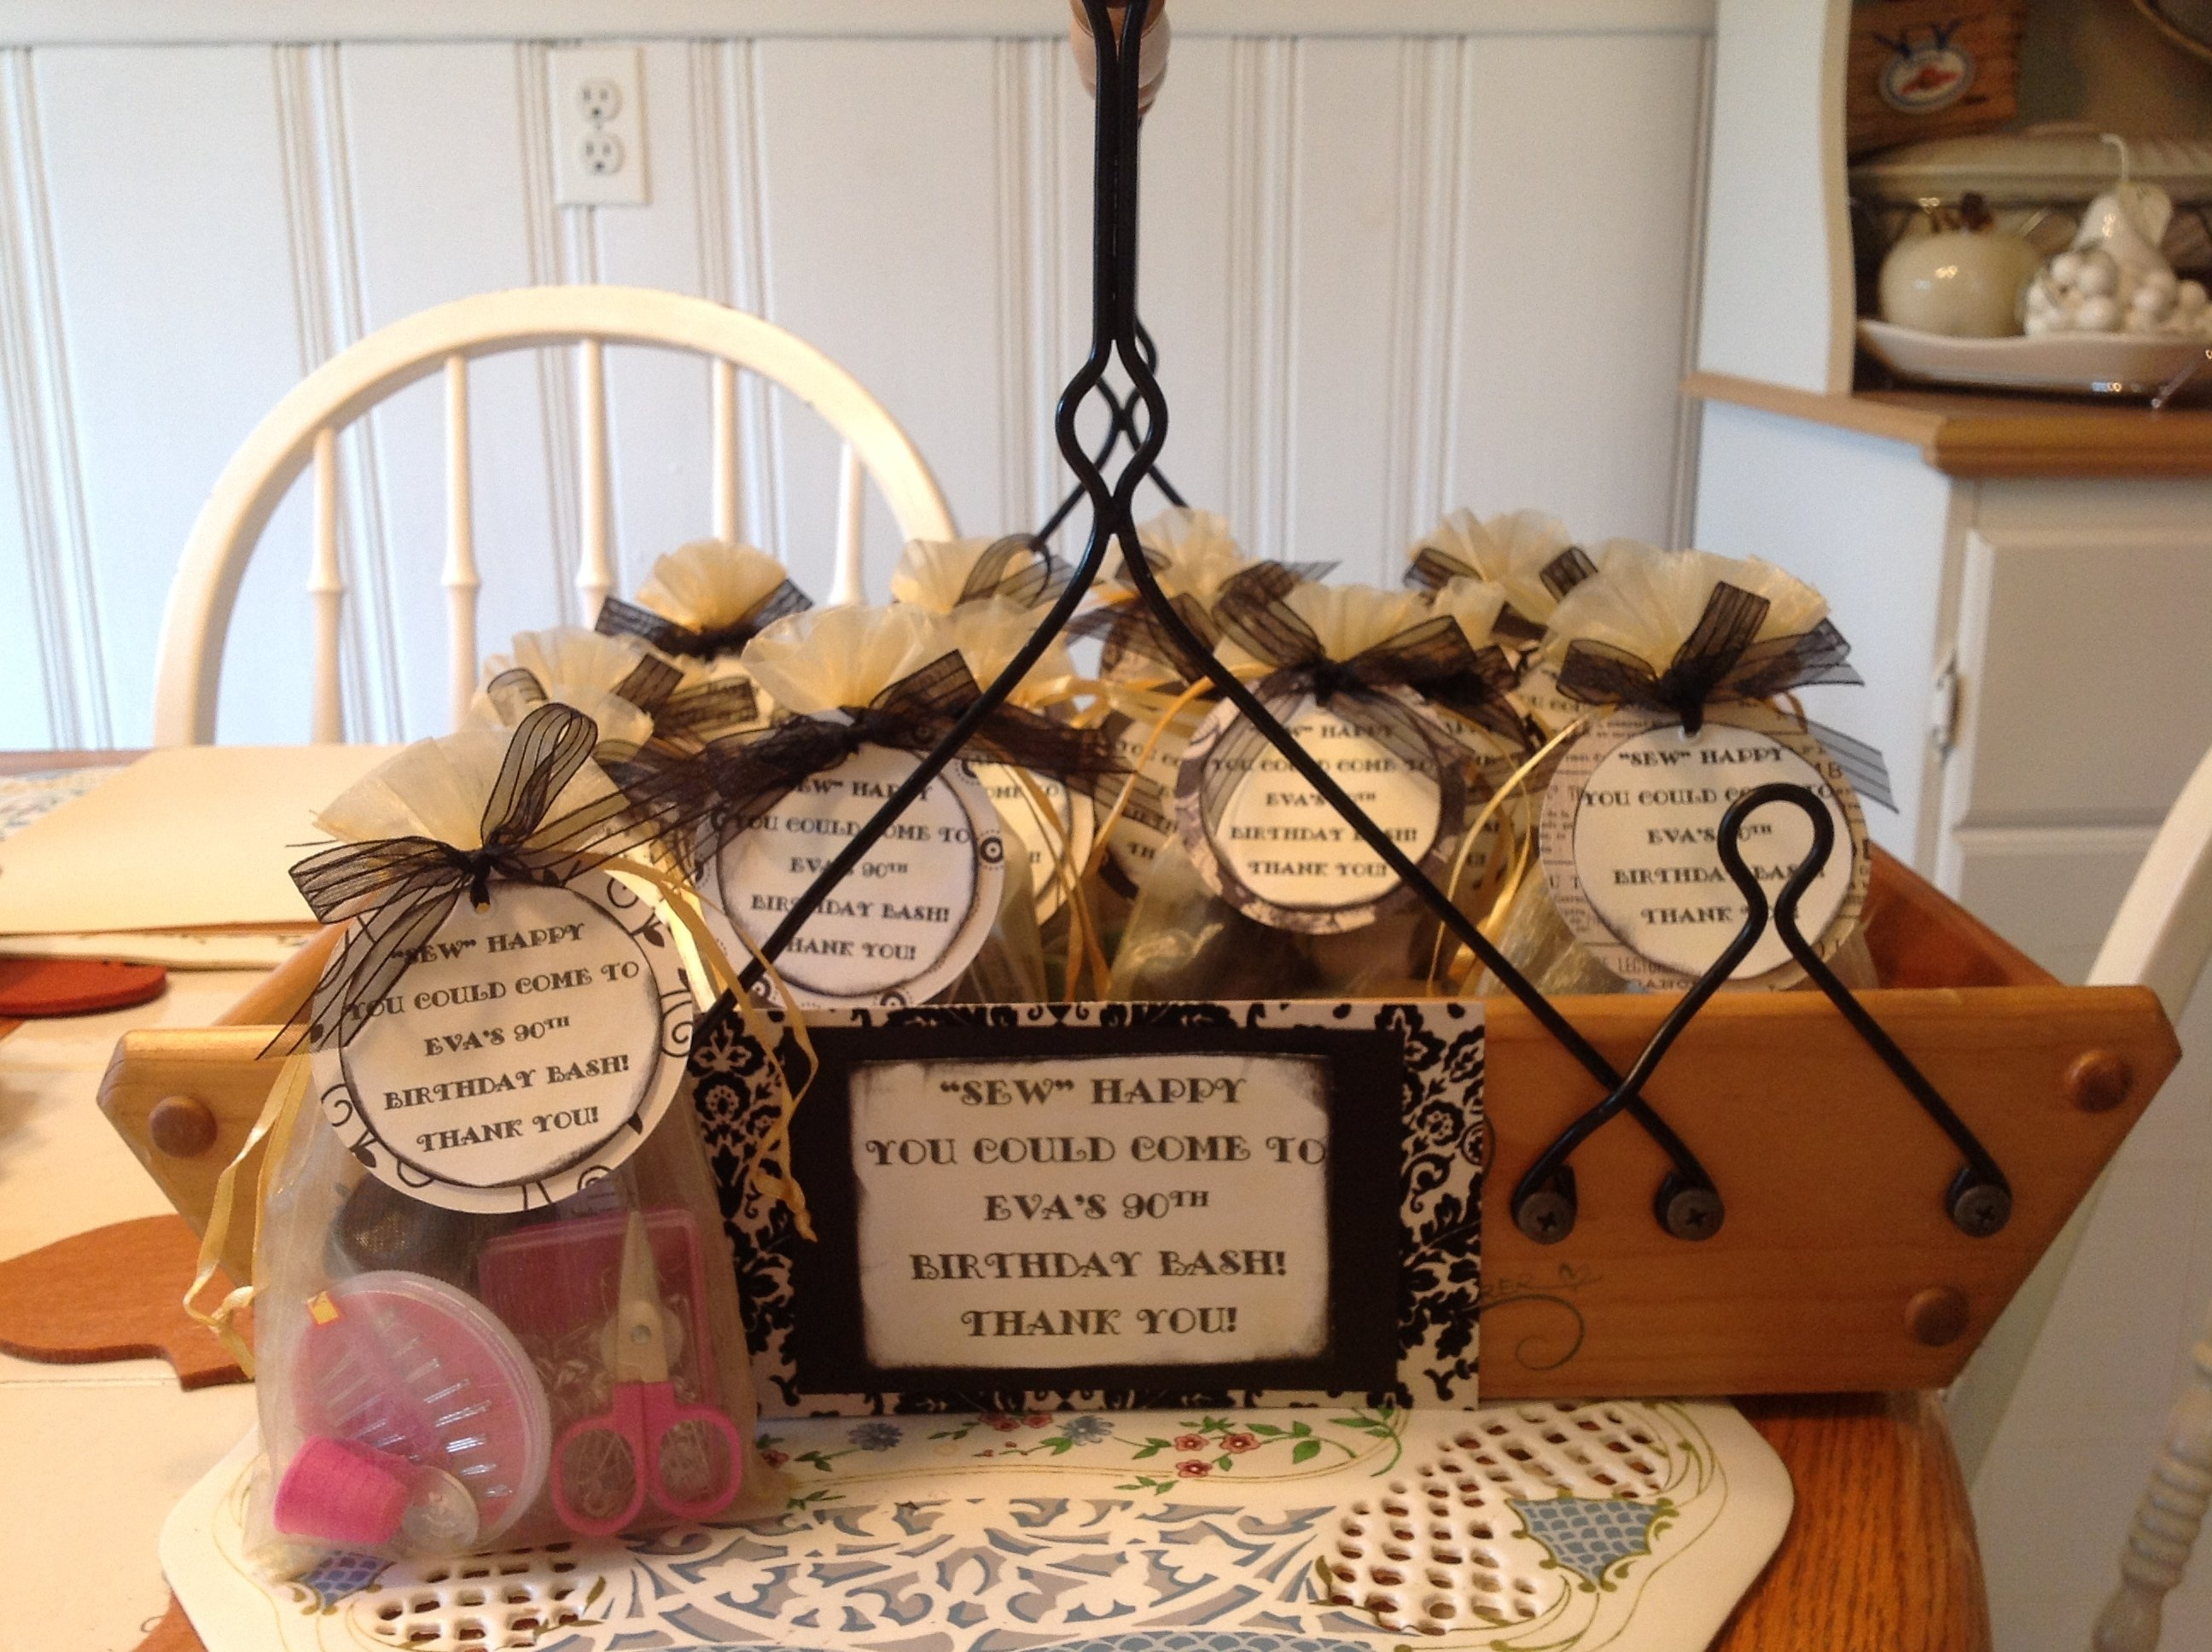 mini sewing kits as a party favor for a 90th birthday party for a